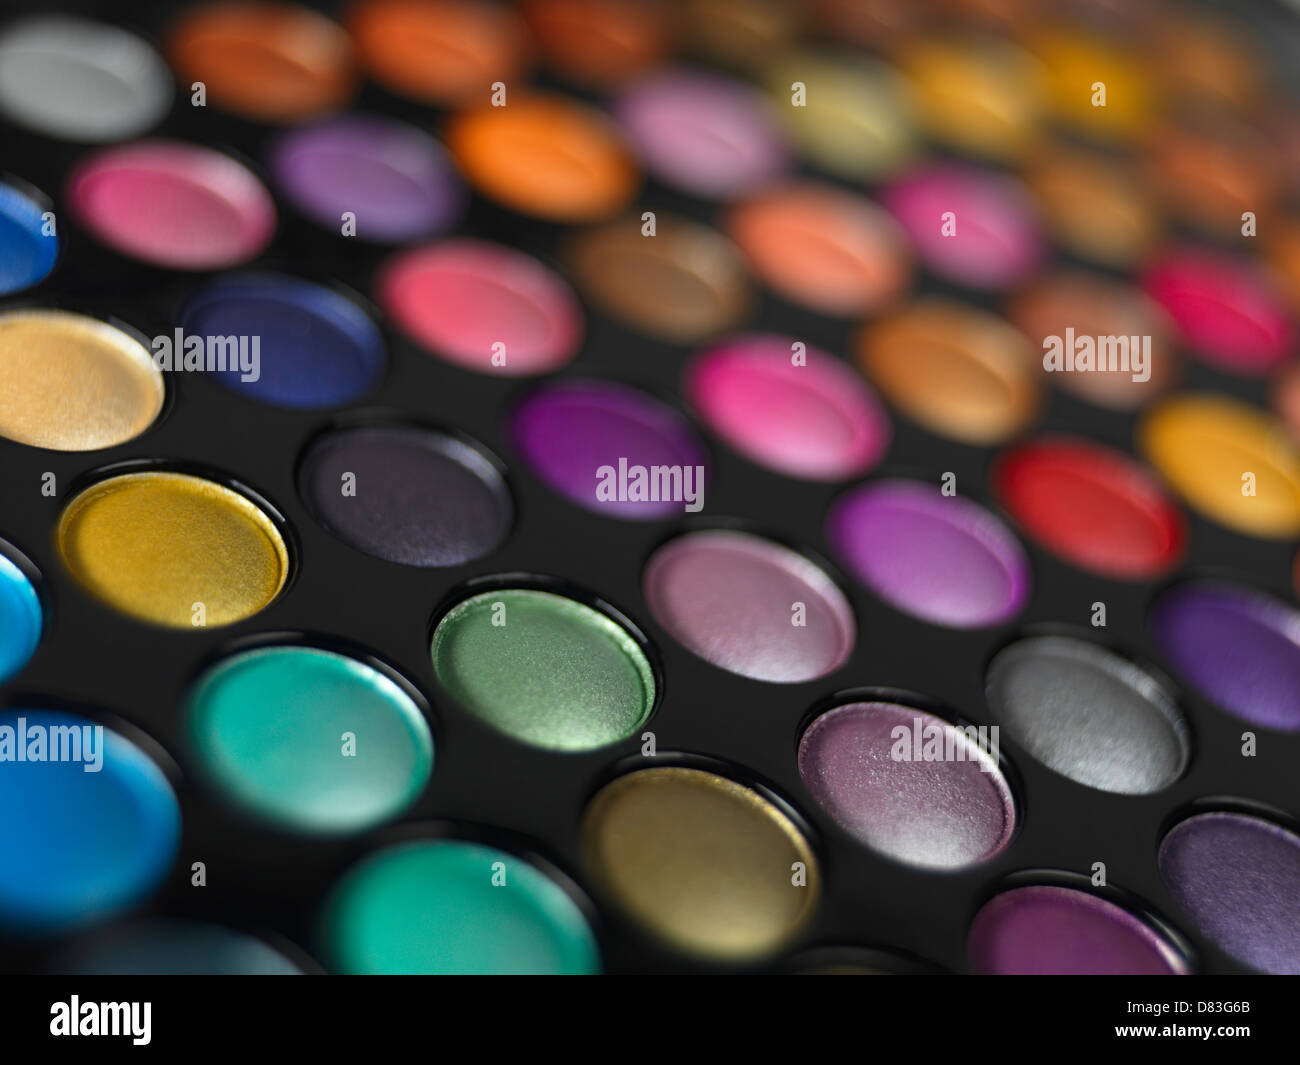 Colorful eye shadow palette - Stock Image